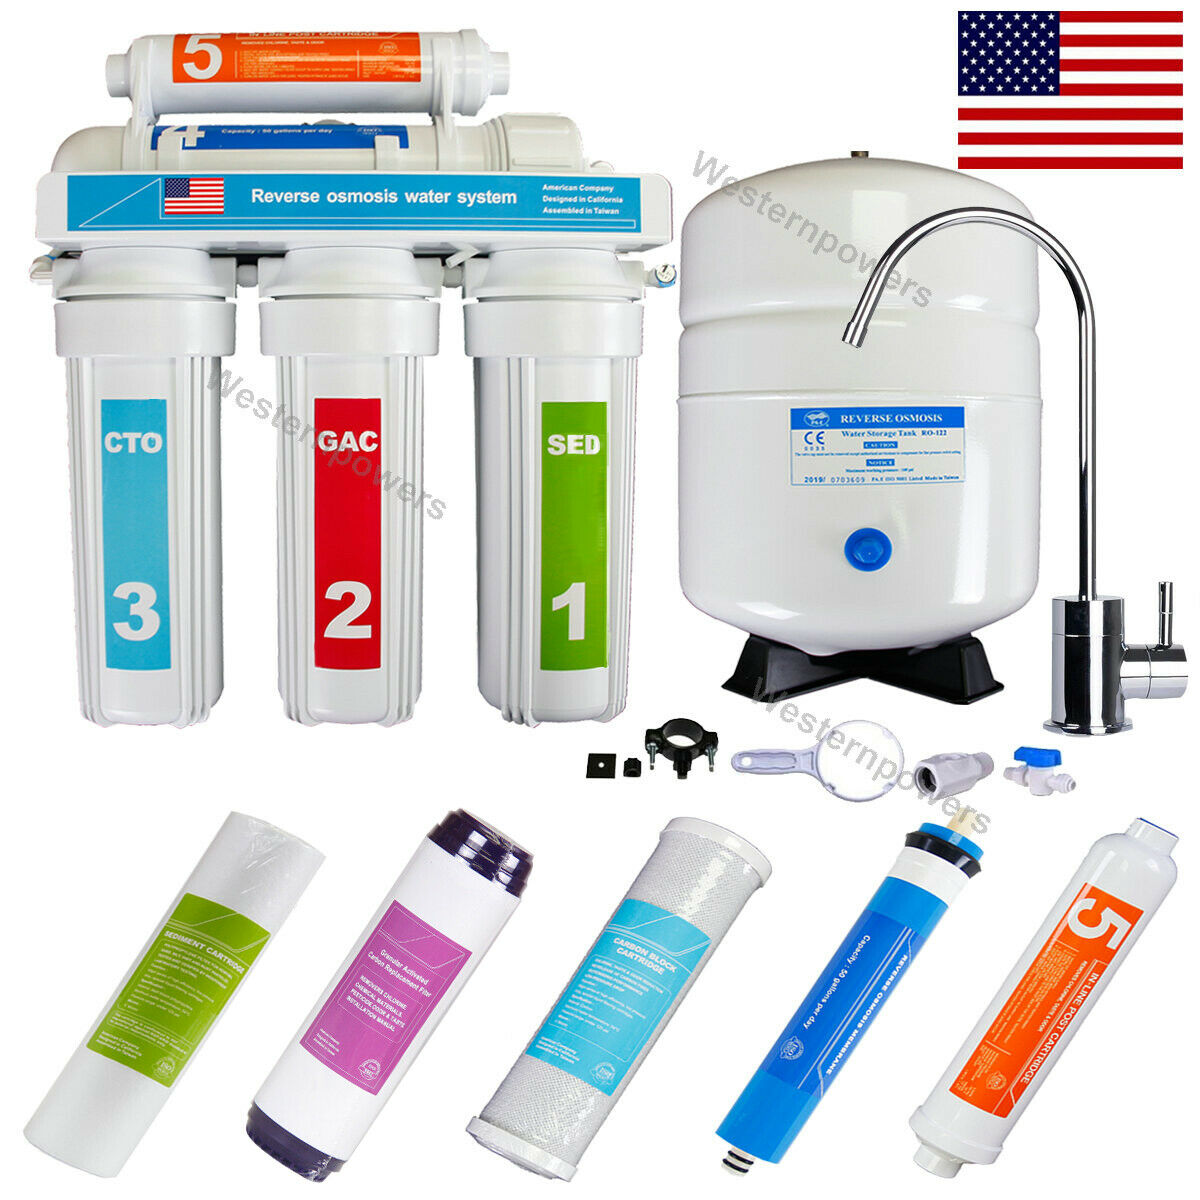 Frizzlife Reverse Osmosis Water Filtration System Countertop Ro Water Filter For Sale Online Ebay